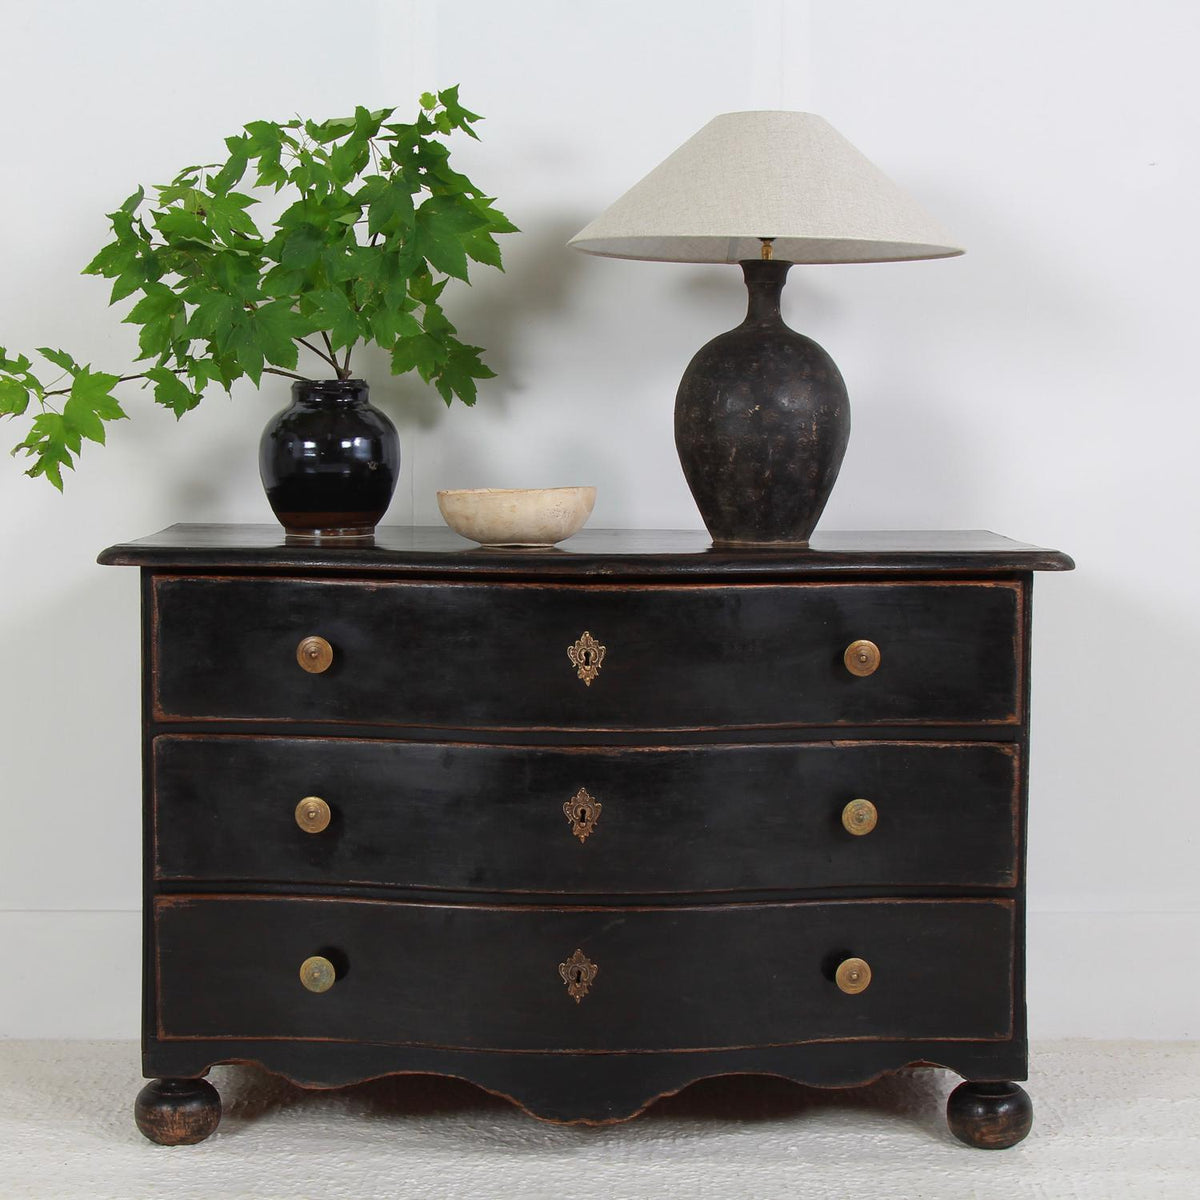 Striking French 19thC Black Painted Serpentine Commode